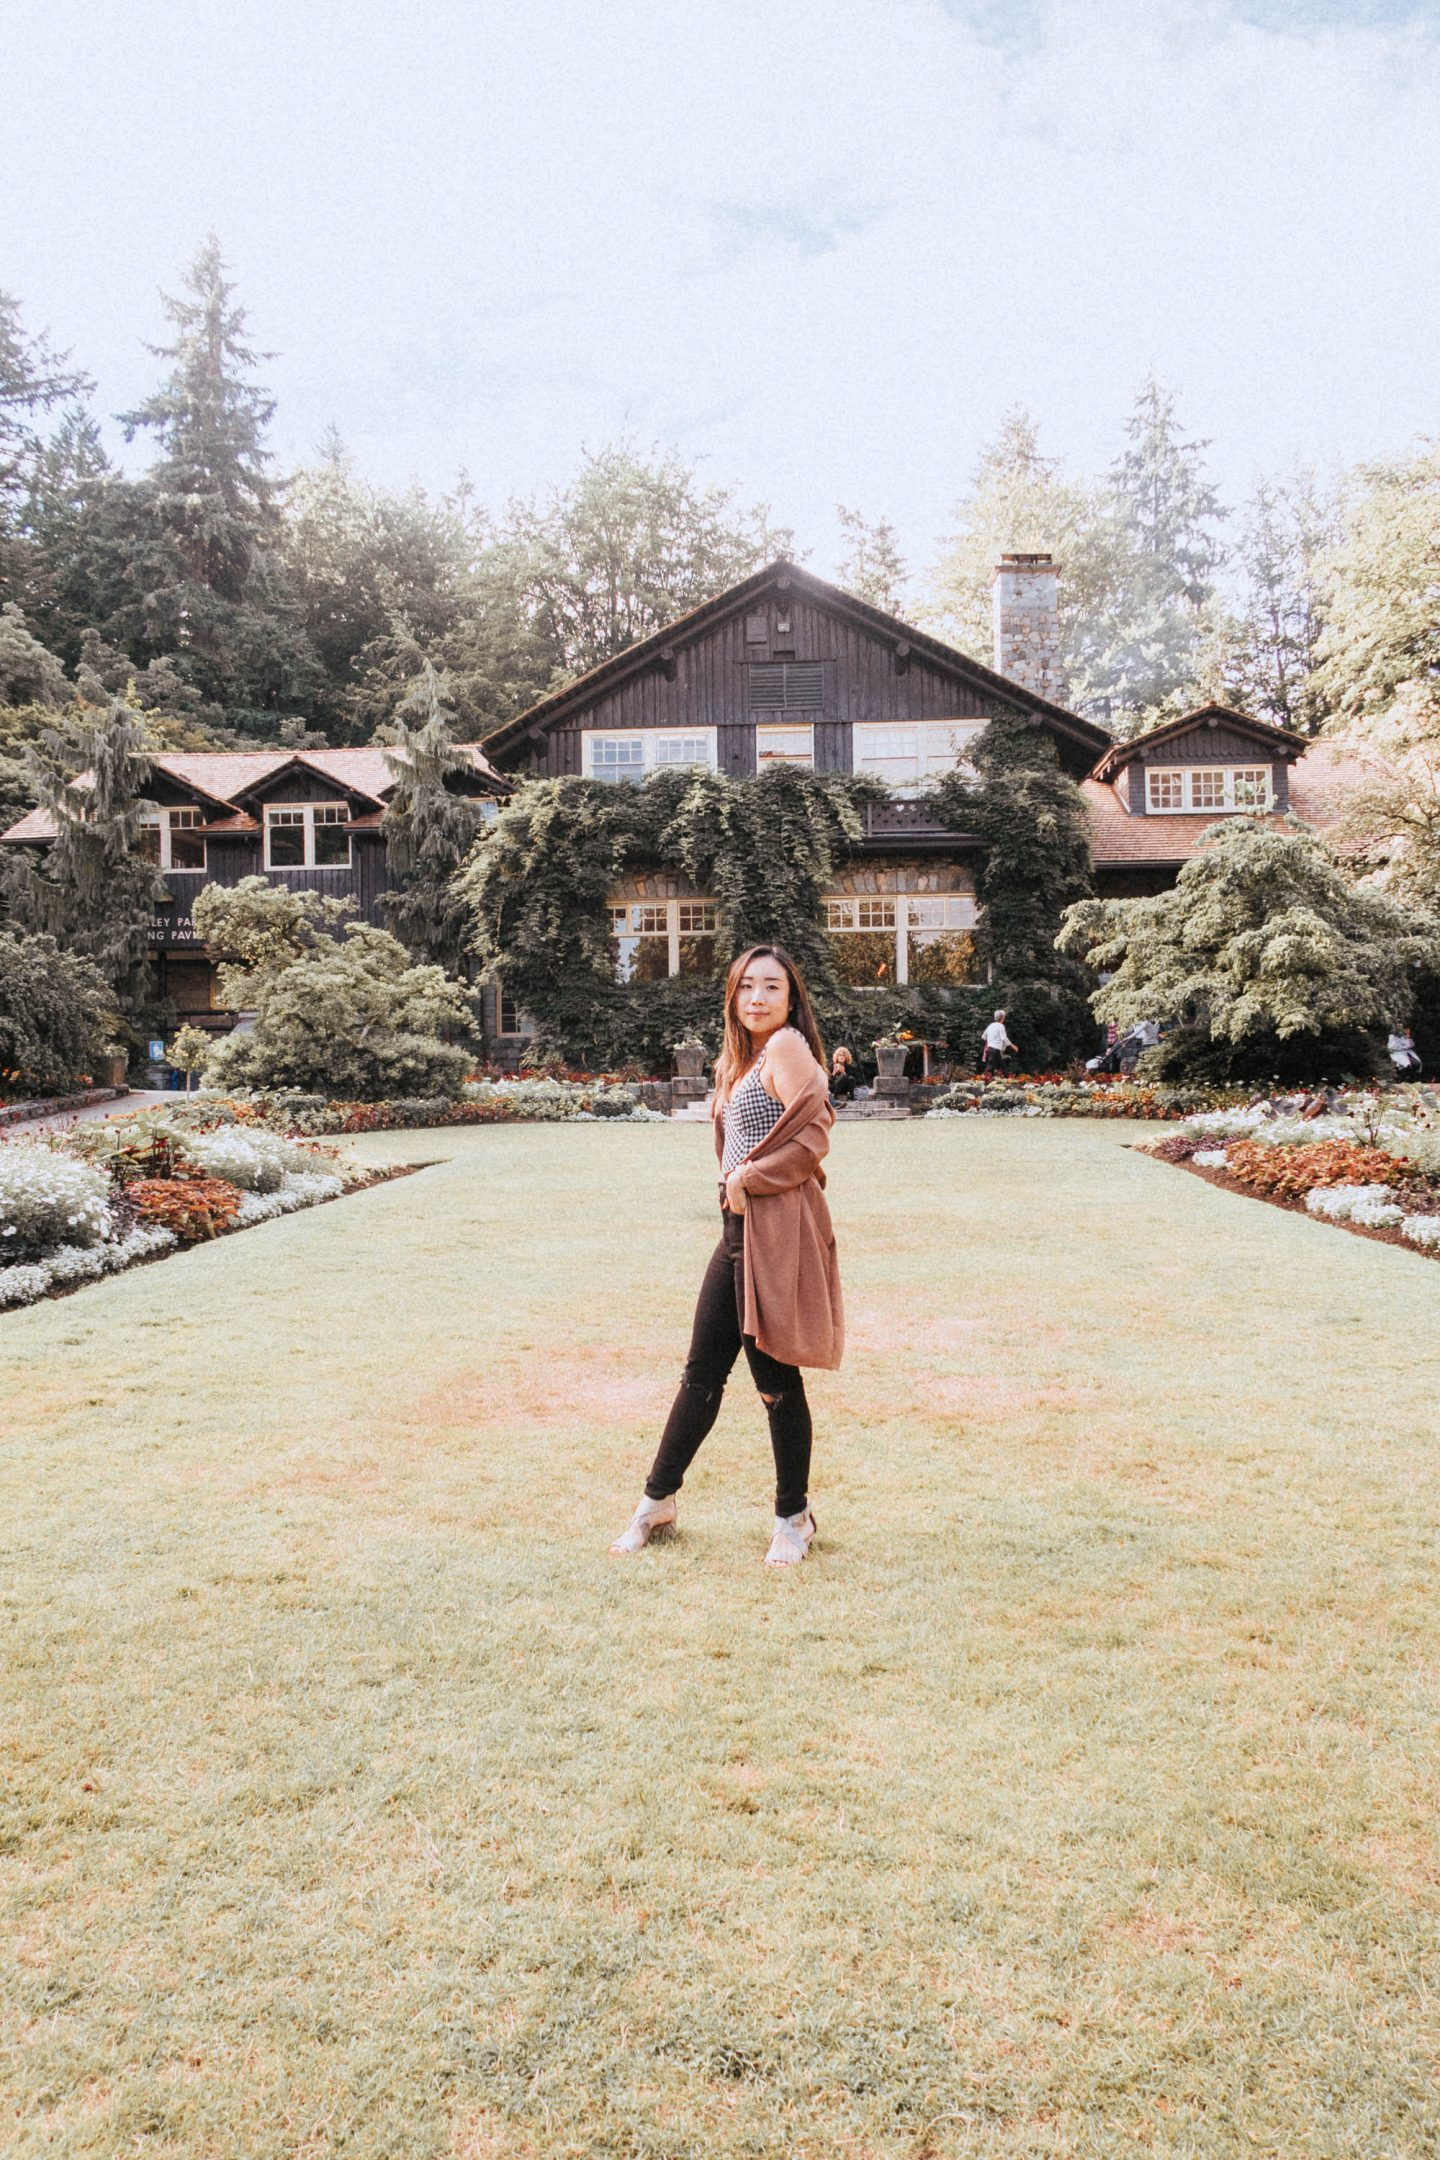 In front of the famous house in Stanley Park in Vancouver BC